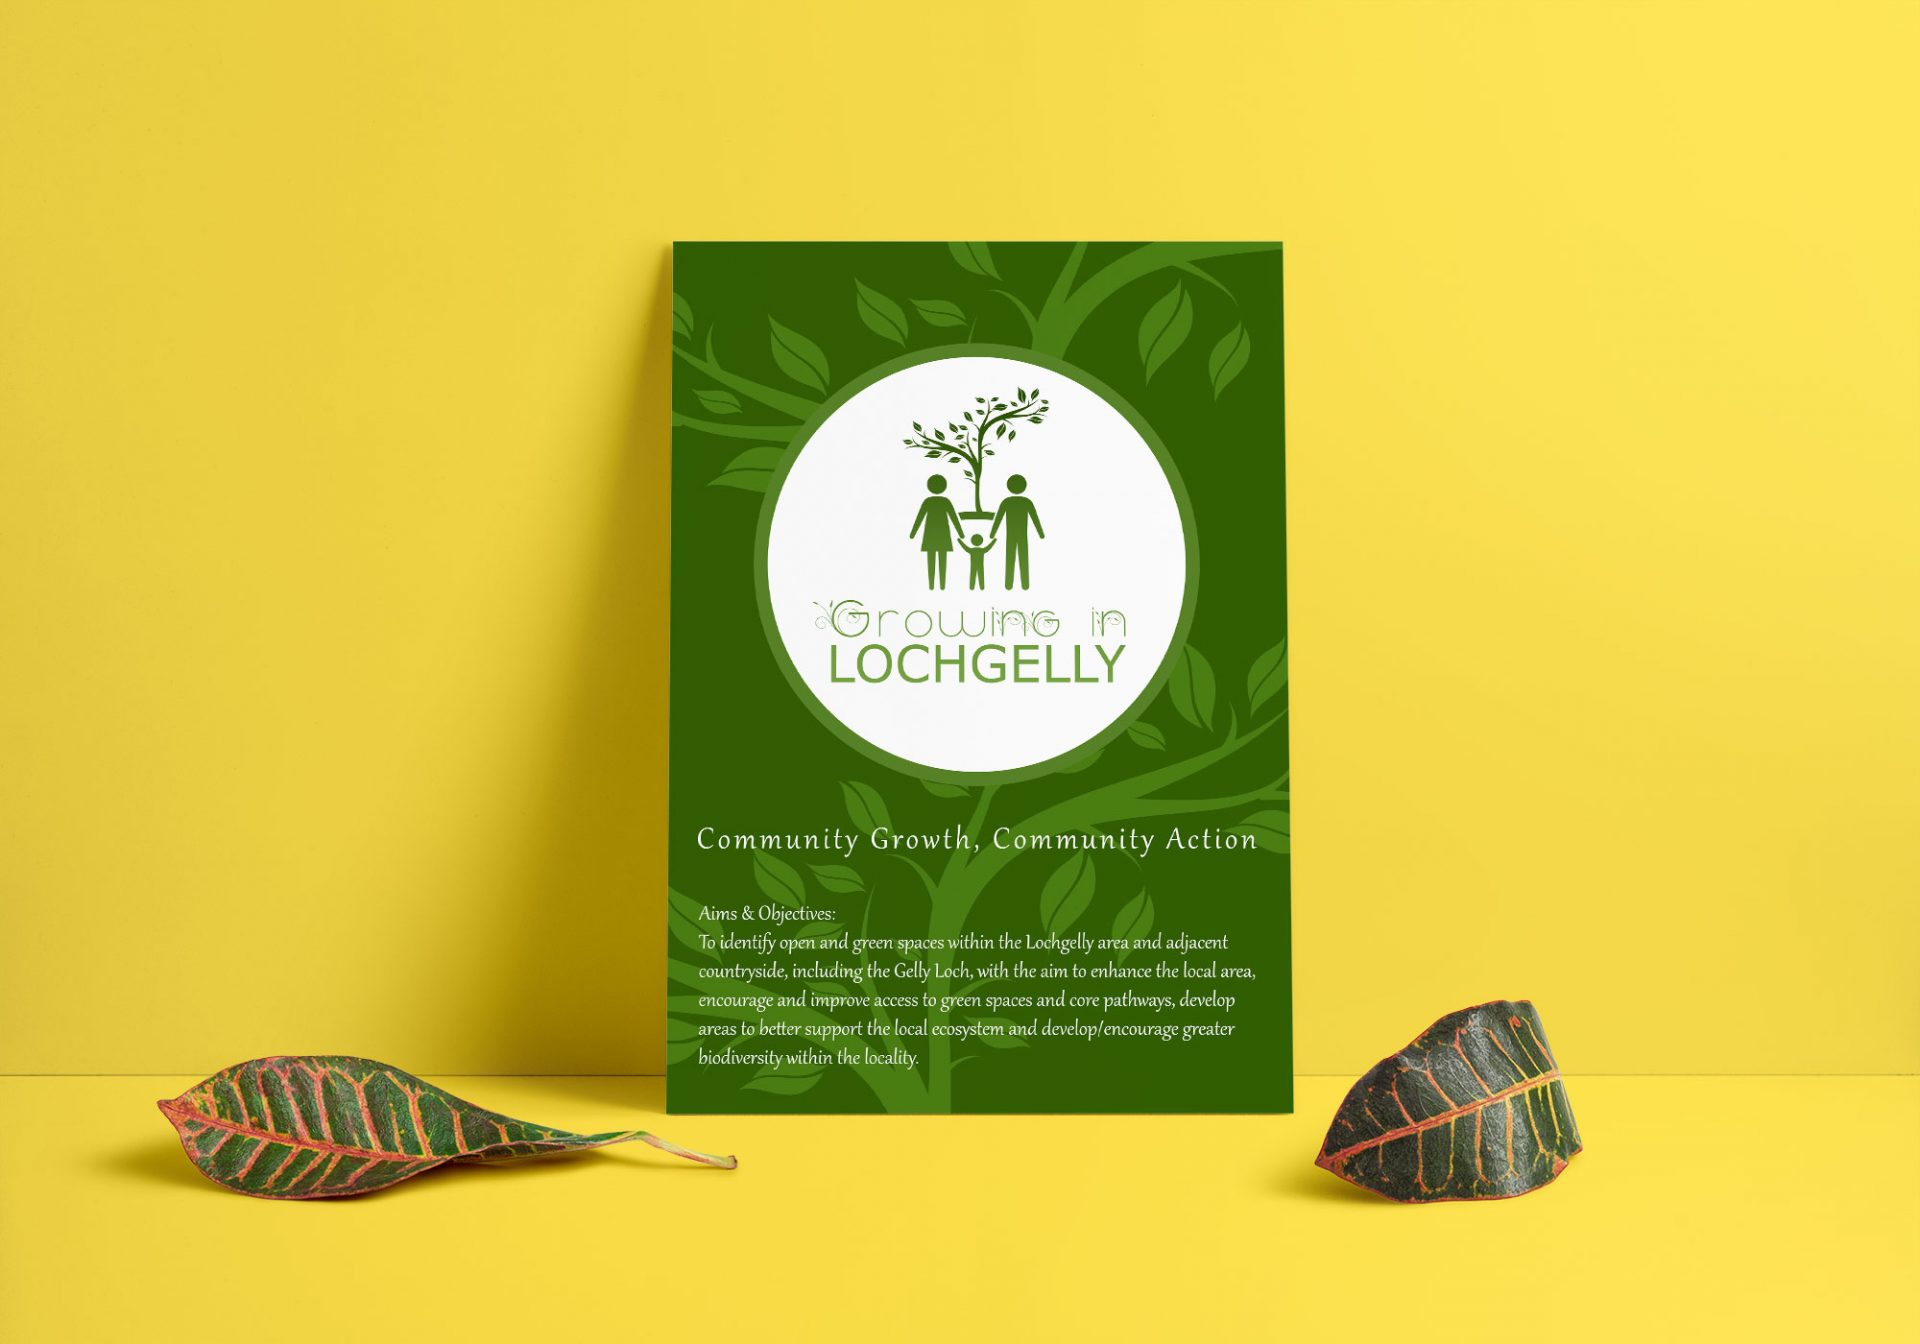 A3 poster designed for Growing in Lochgelly